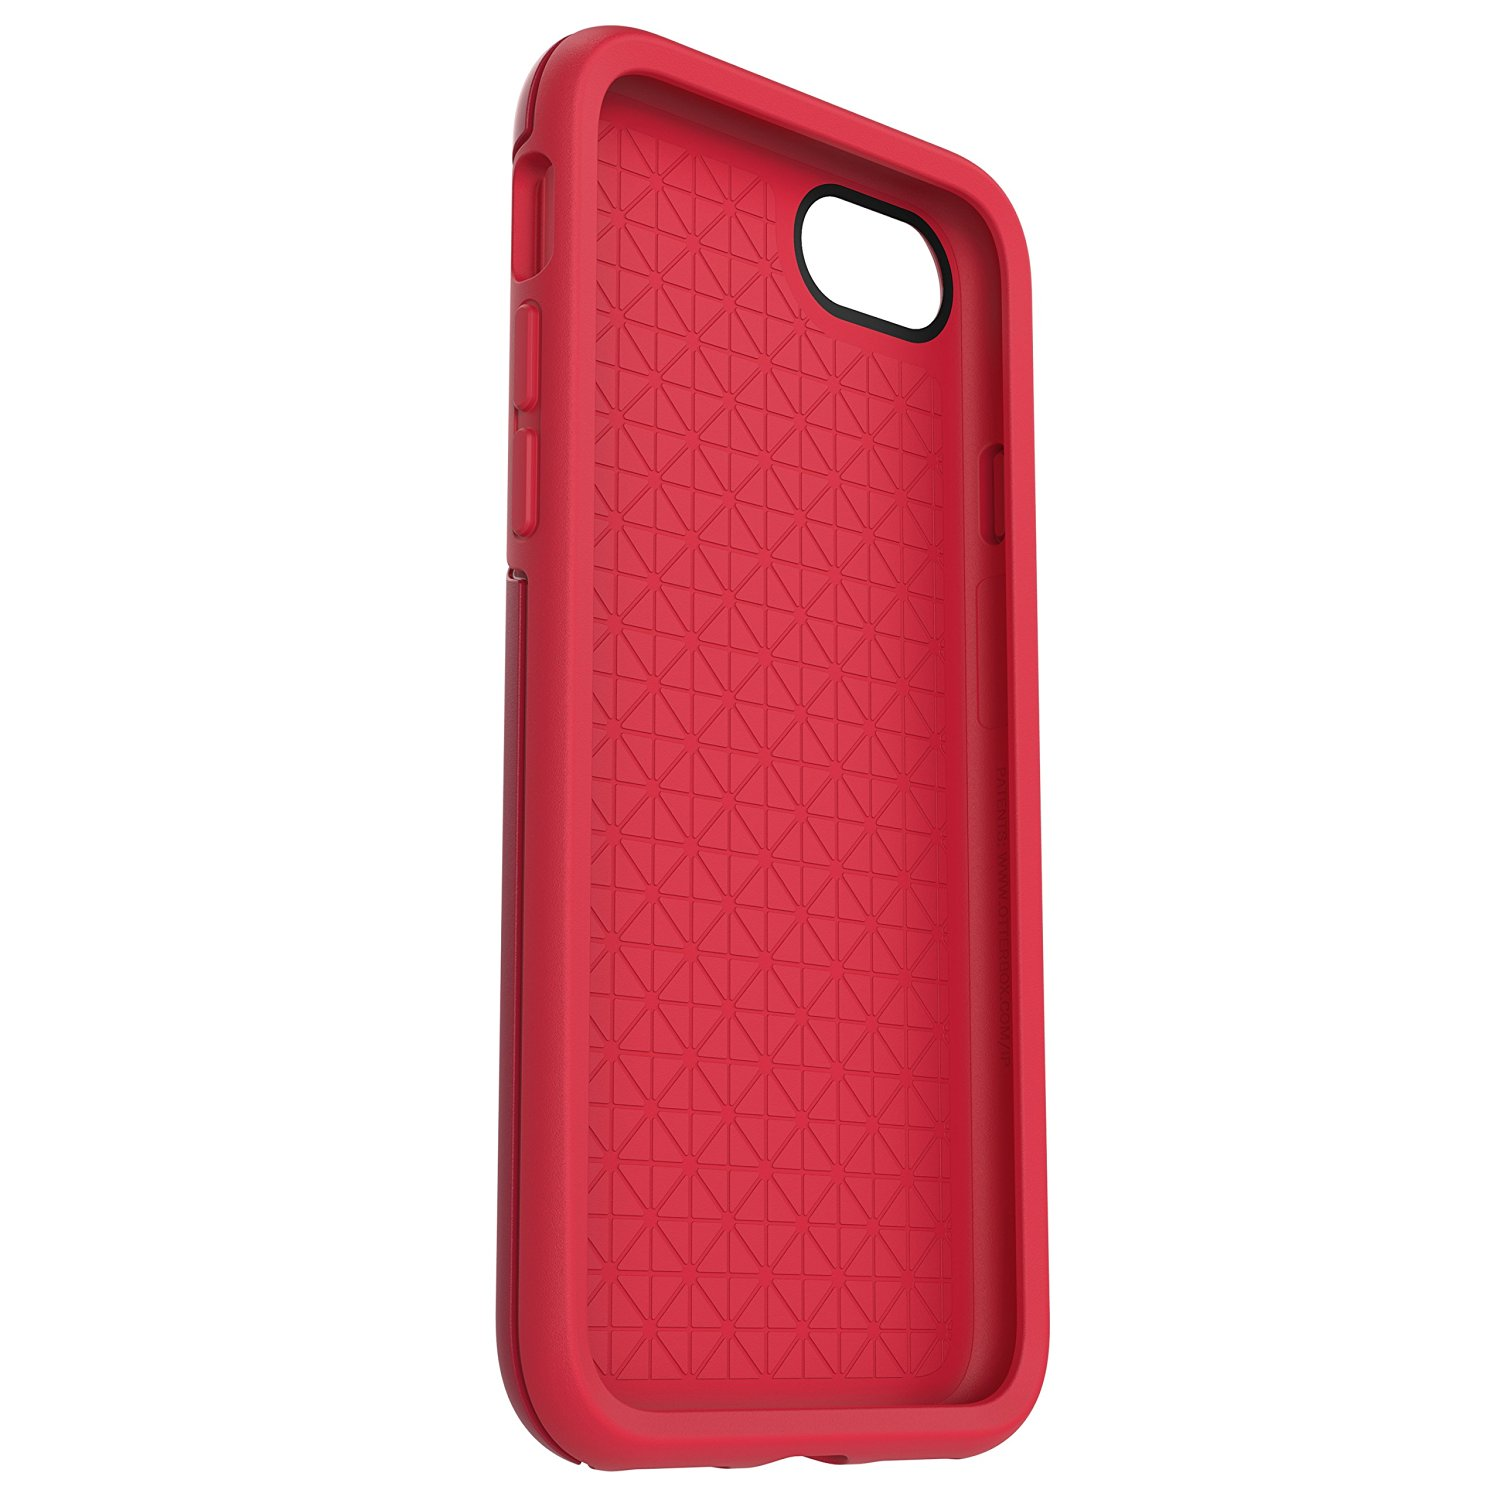 OtterBox-Symmetry-for-iPhone-8-7-Slim-Raised-Edge-One-Piece-Case-All-Colours-DF miniature 45